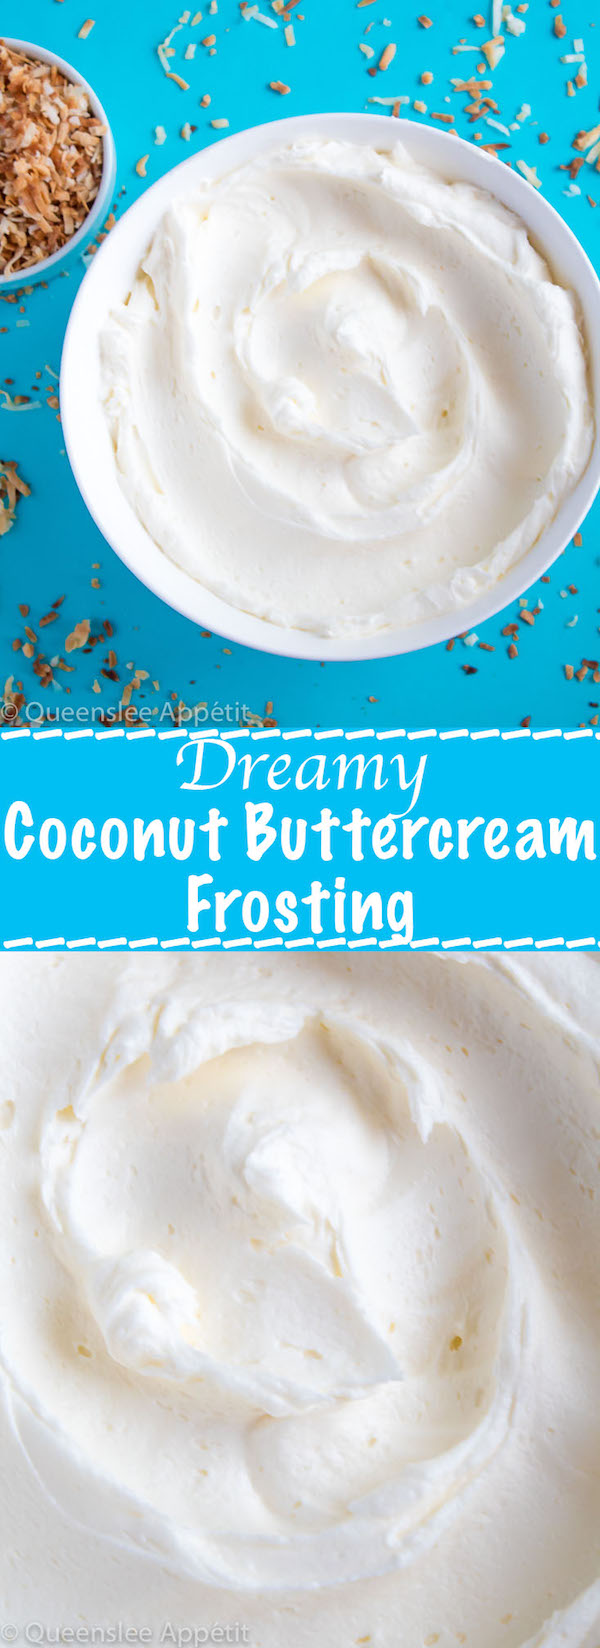 This Dreamy Coconut Buttercream Frosting is extremely light and creamy! It pairs perfectly with any flavour of cake or cupcakes, and if you replace the butter with vegan margarine, it'll be 100% dairy free!